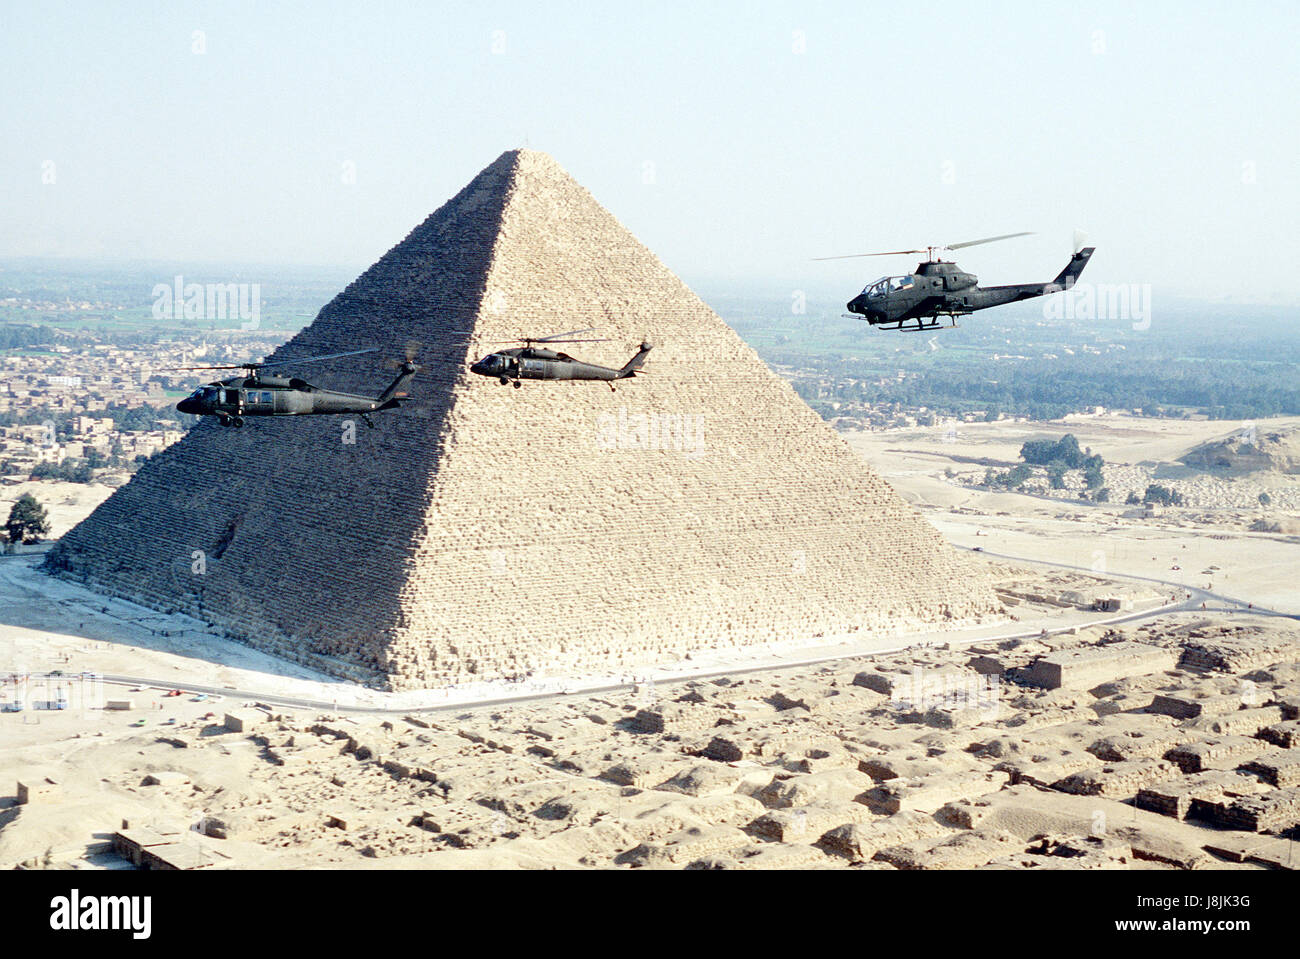 Military helicopters flying in front of a pyramid in Egypt - Stock Image